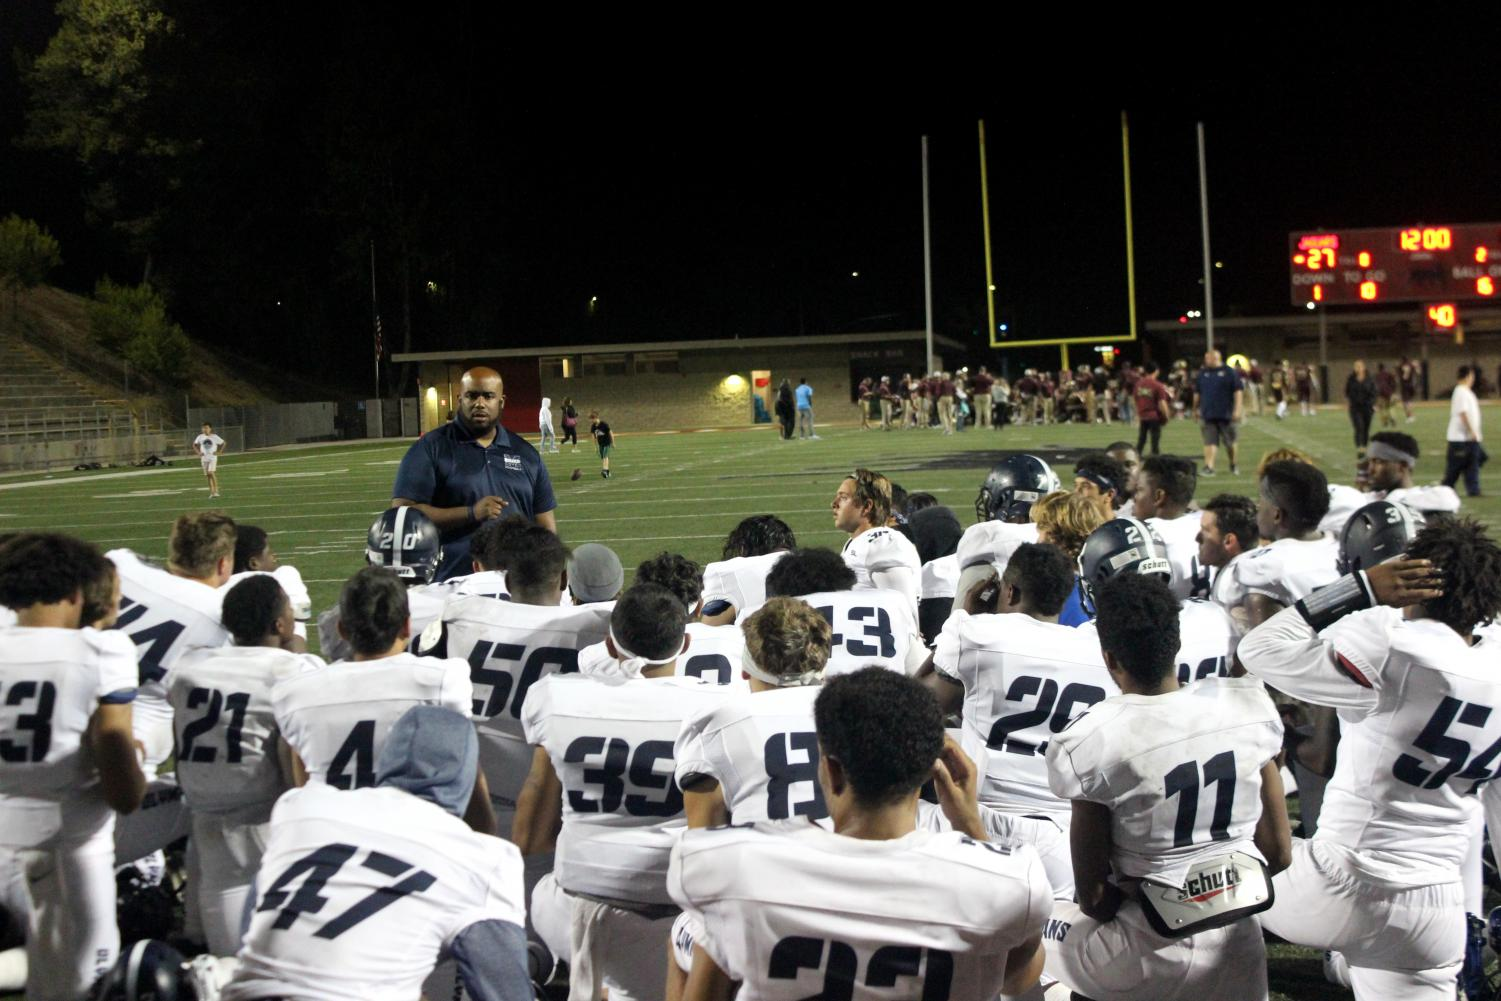 Mesa Olympians Coach Gary Watkins addresses the team on the field after their season opening loss to the Southwestern Jaguars at DeVore Stadium.